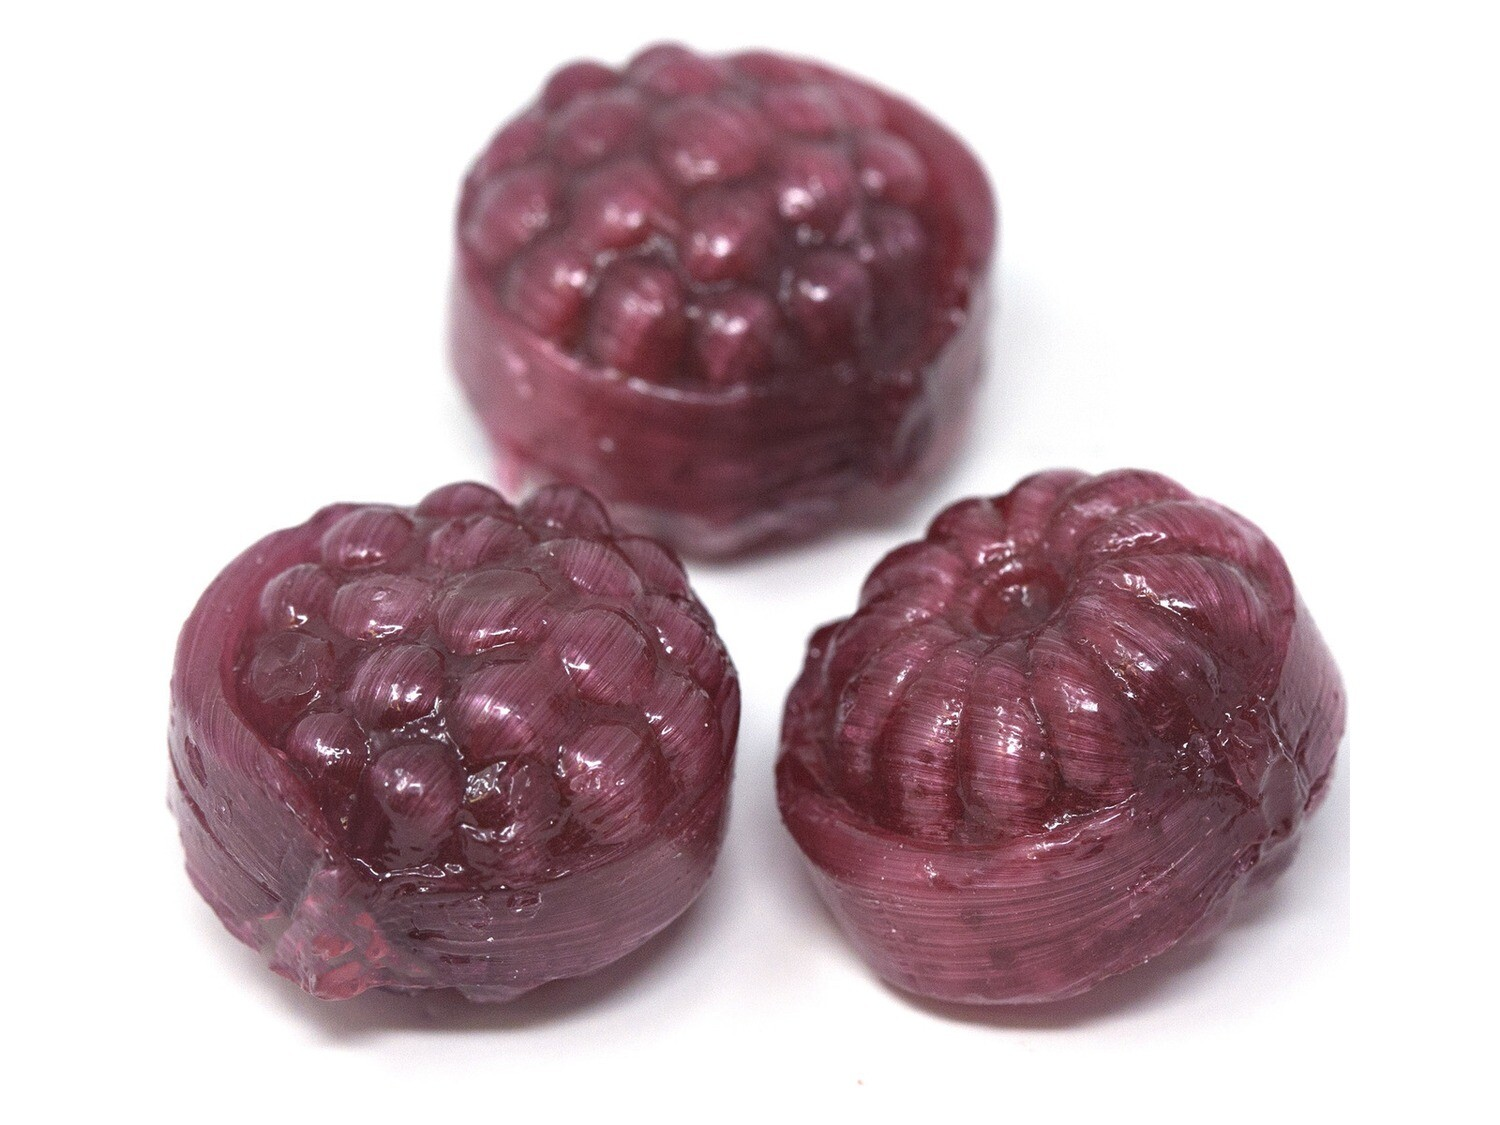 Filled Red Raspberries